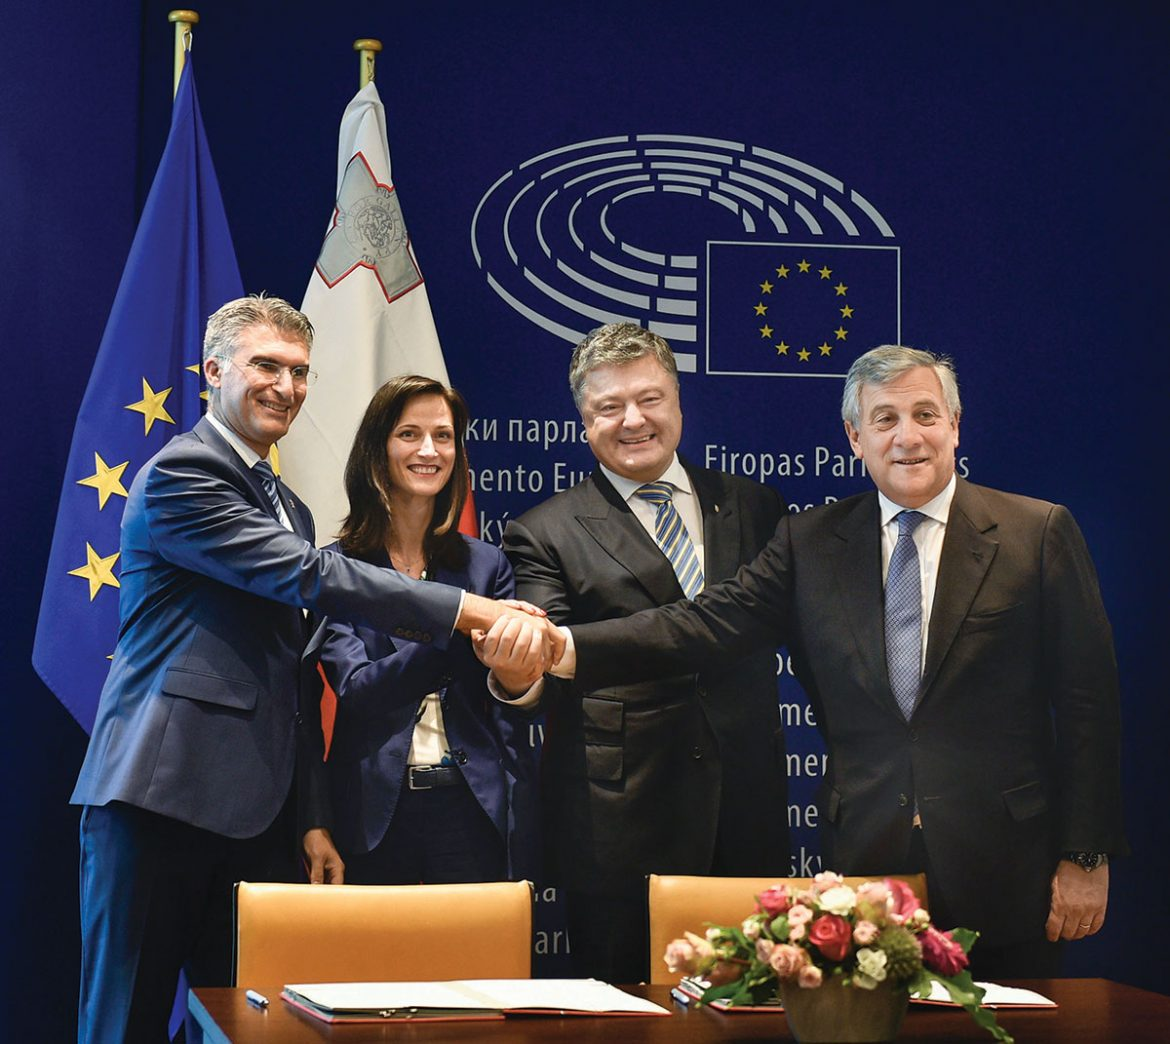 At the signing ceremony for a new visa-liberalization regime with the European Union in Strasbourg on May 17 (from left) are: Malta's Interior Minister Carmelo Abela (whose country then held the rotating presidency of the EU), Member of the European Parliament Mariya Gabriel, Ukraine's President Petro Poroshenko and European Parliament President Antonio Tajani. In his May 14 press conference, Mr. Poroshenko cited Ukraine's closer ties with the European Union as a major achievement.